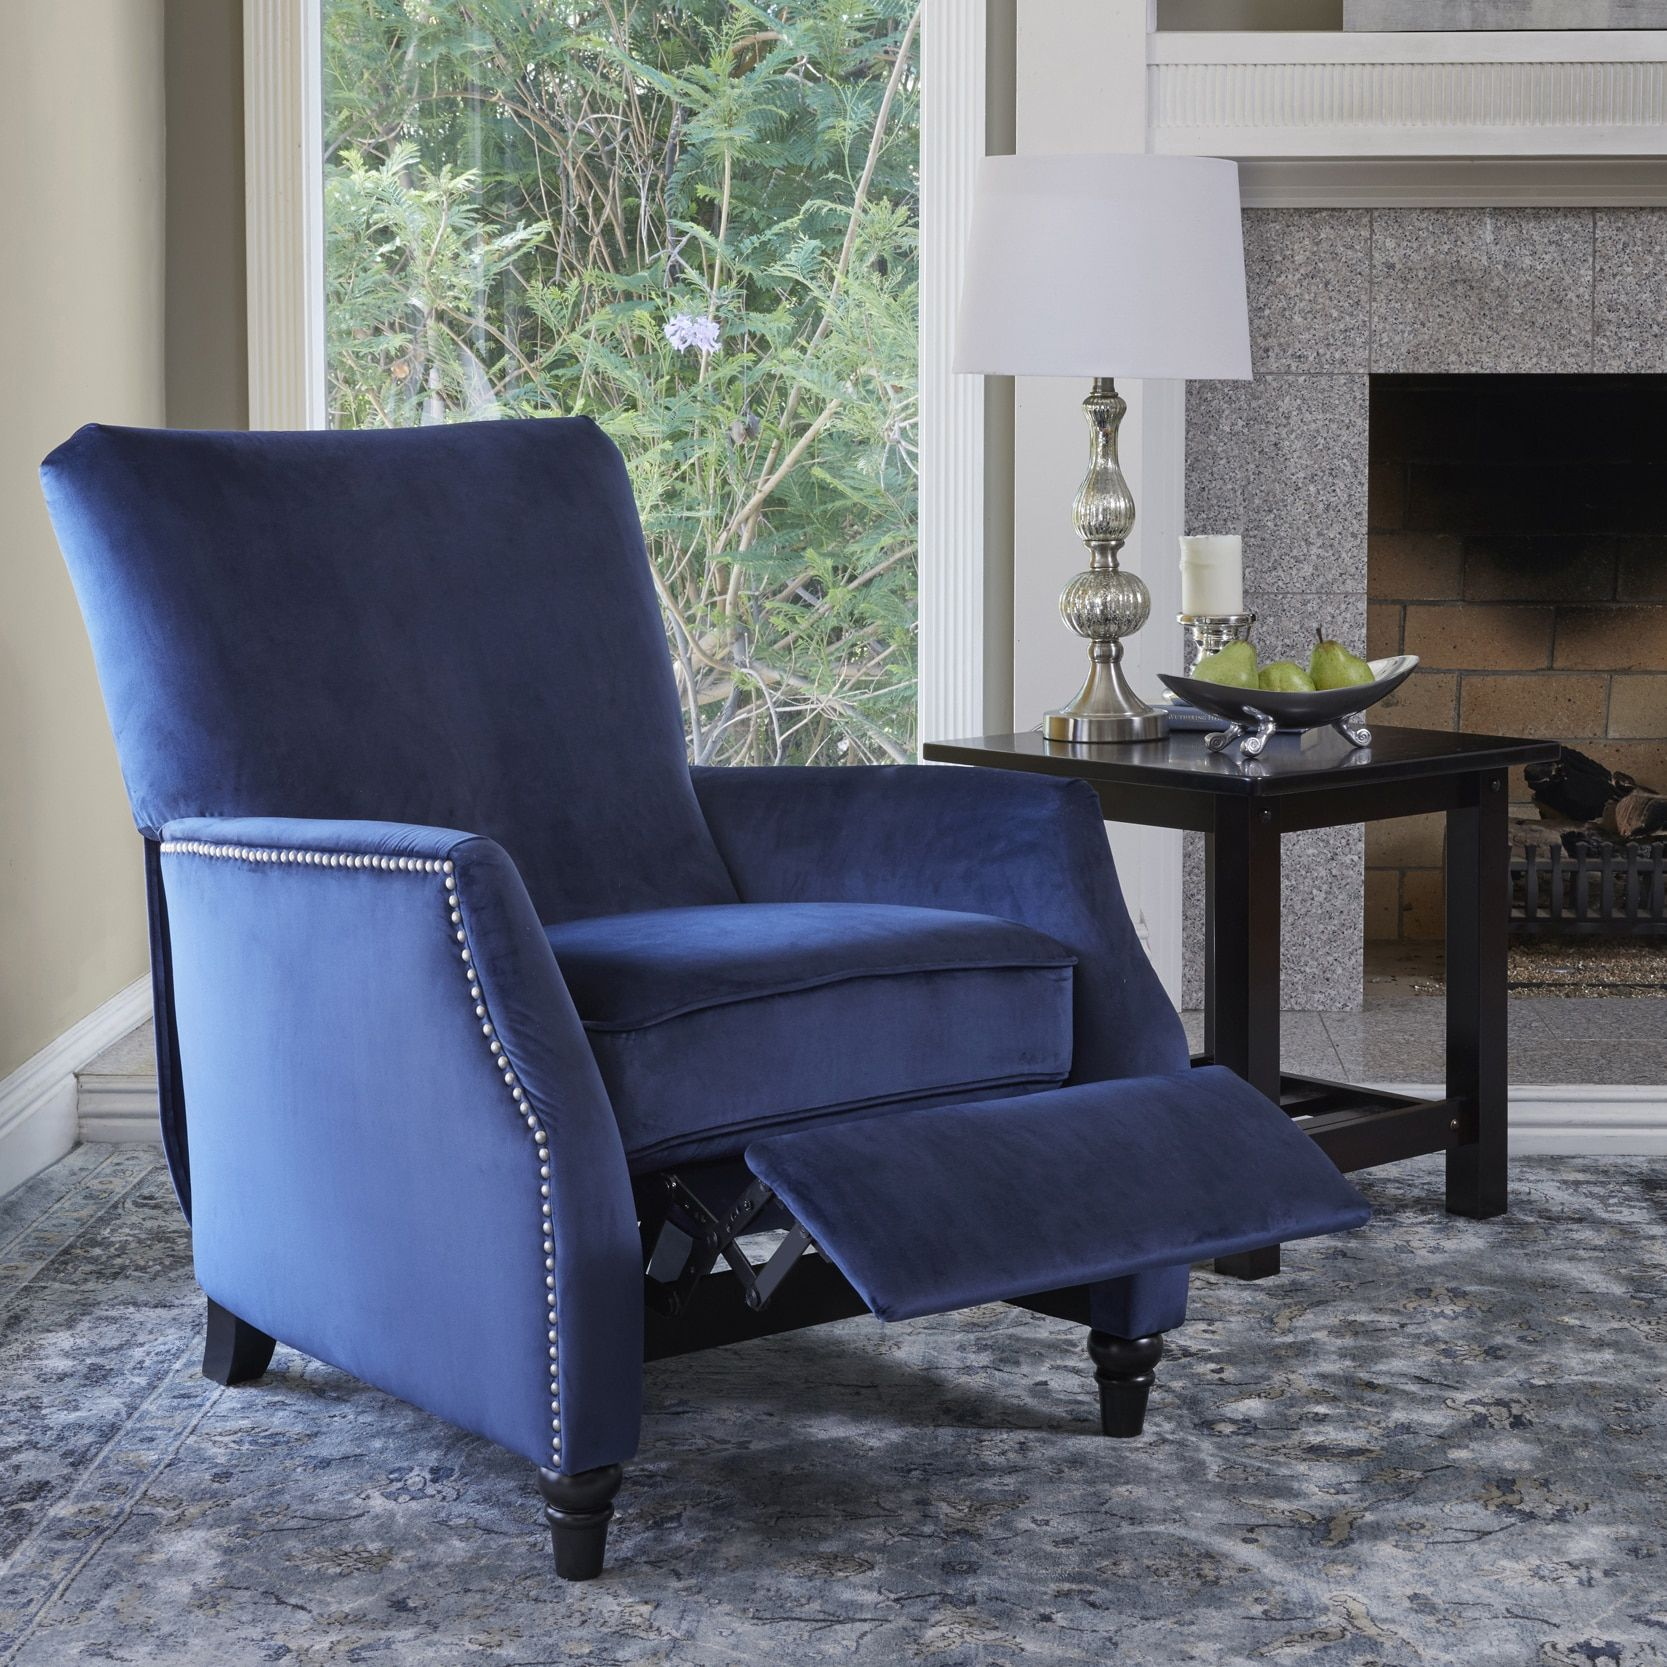 navy blue velvet club chair cheap cover hire perth prolounger push back recliner size standard polyester